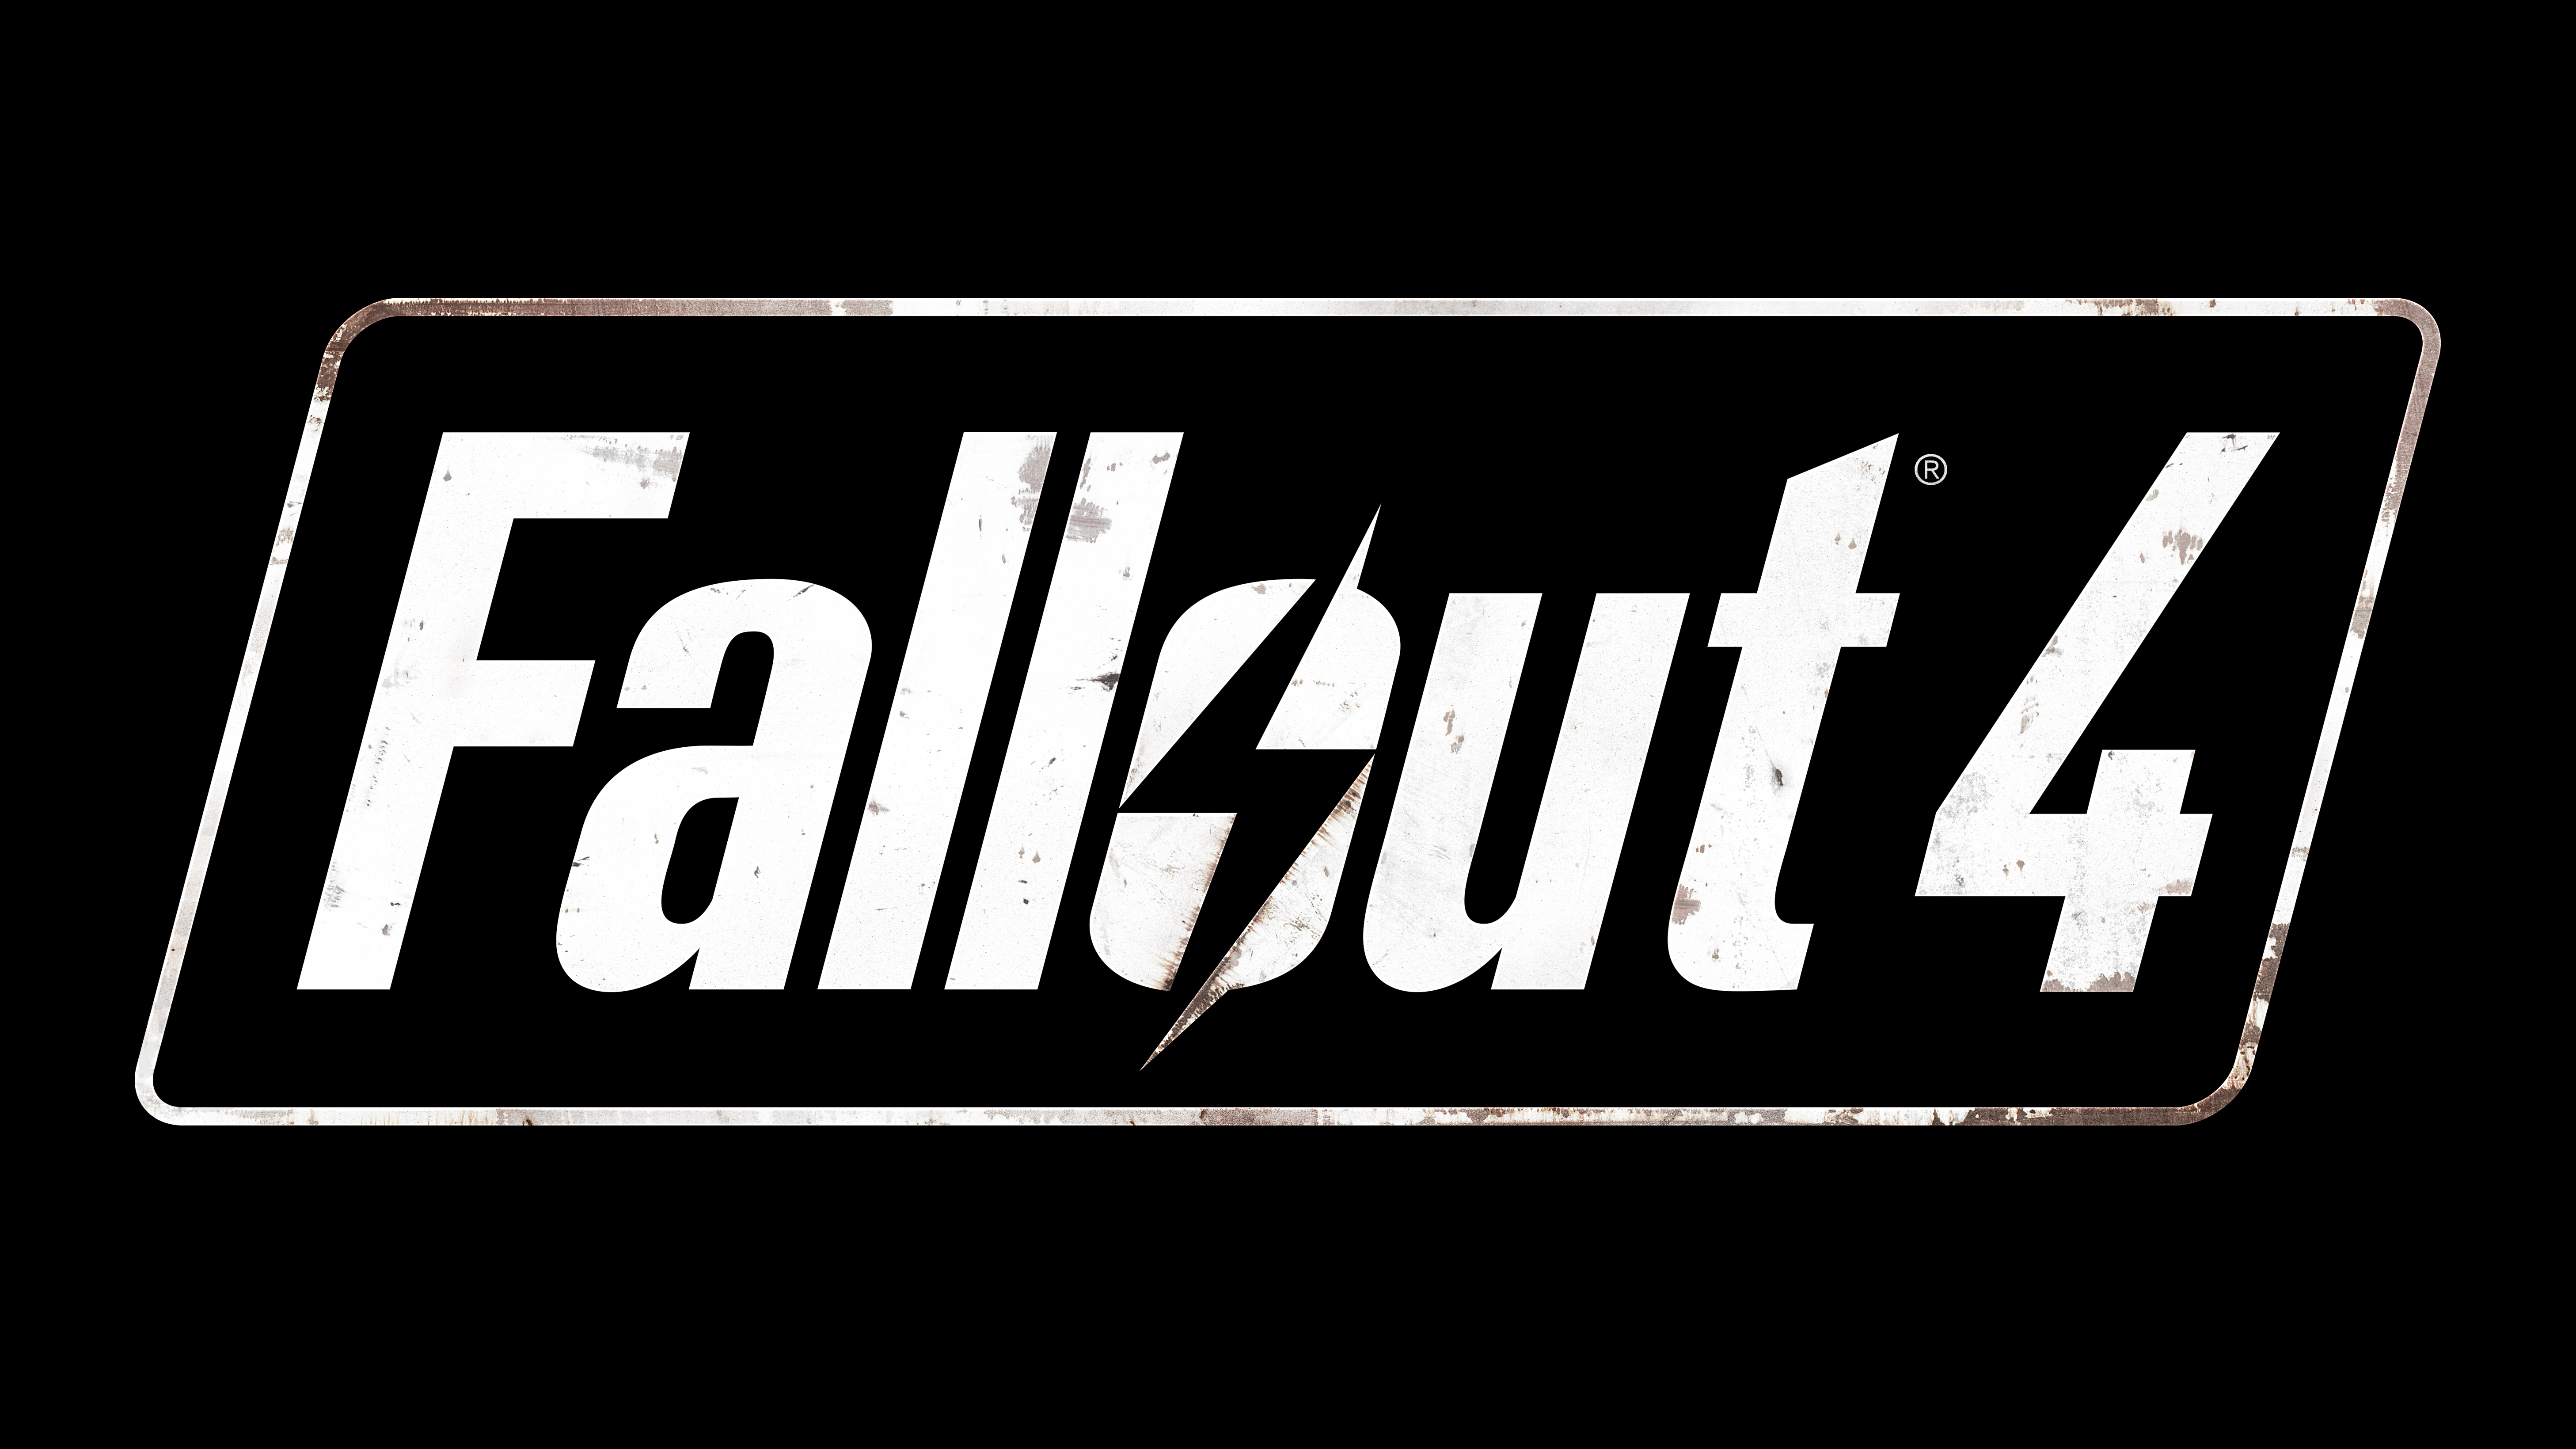 Cool Wallpaper Logo Fallout 4 - 599169  You Should Have_732111.jpg